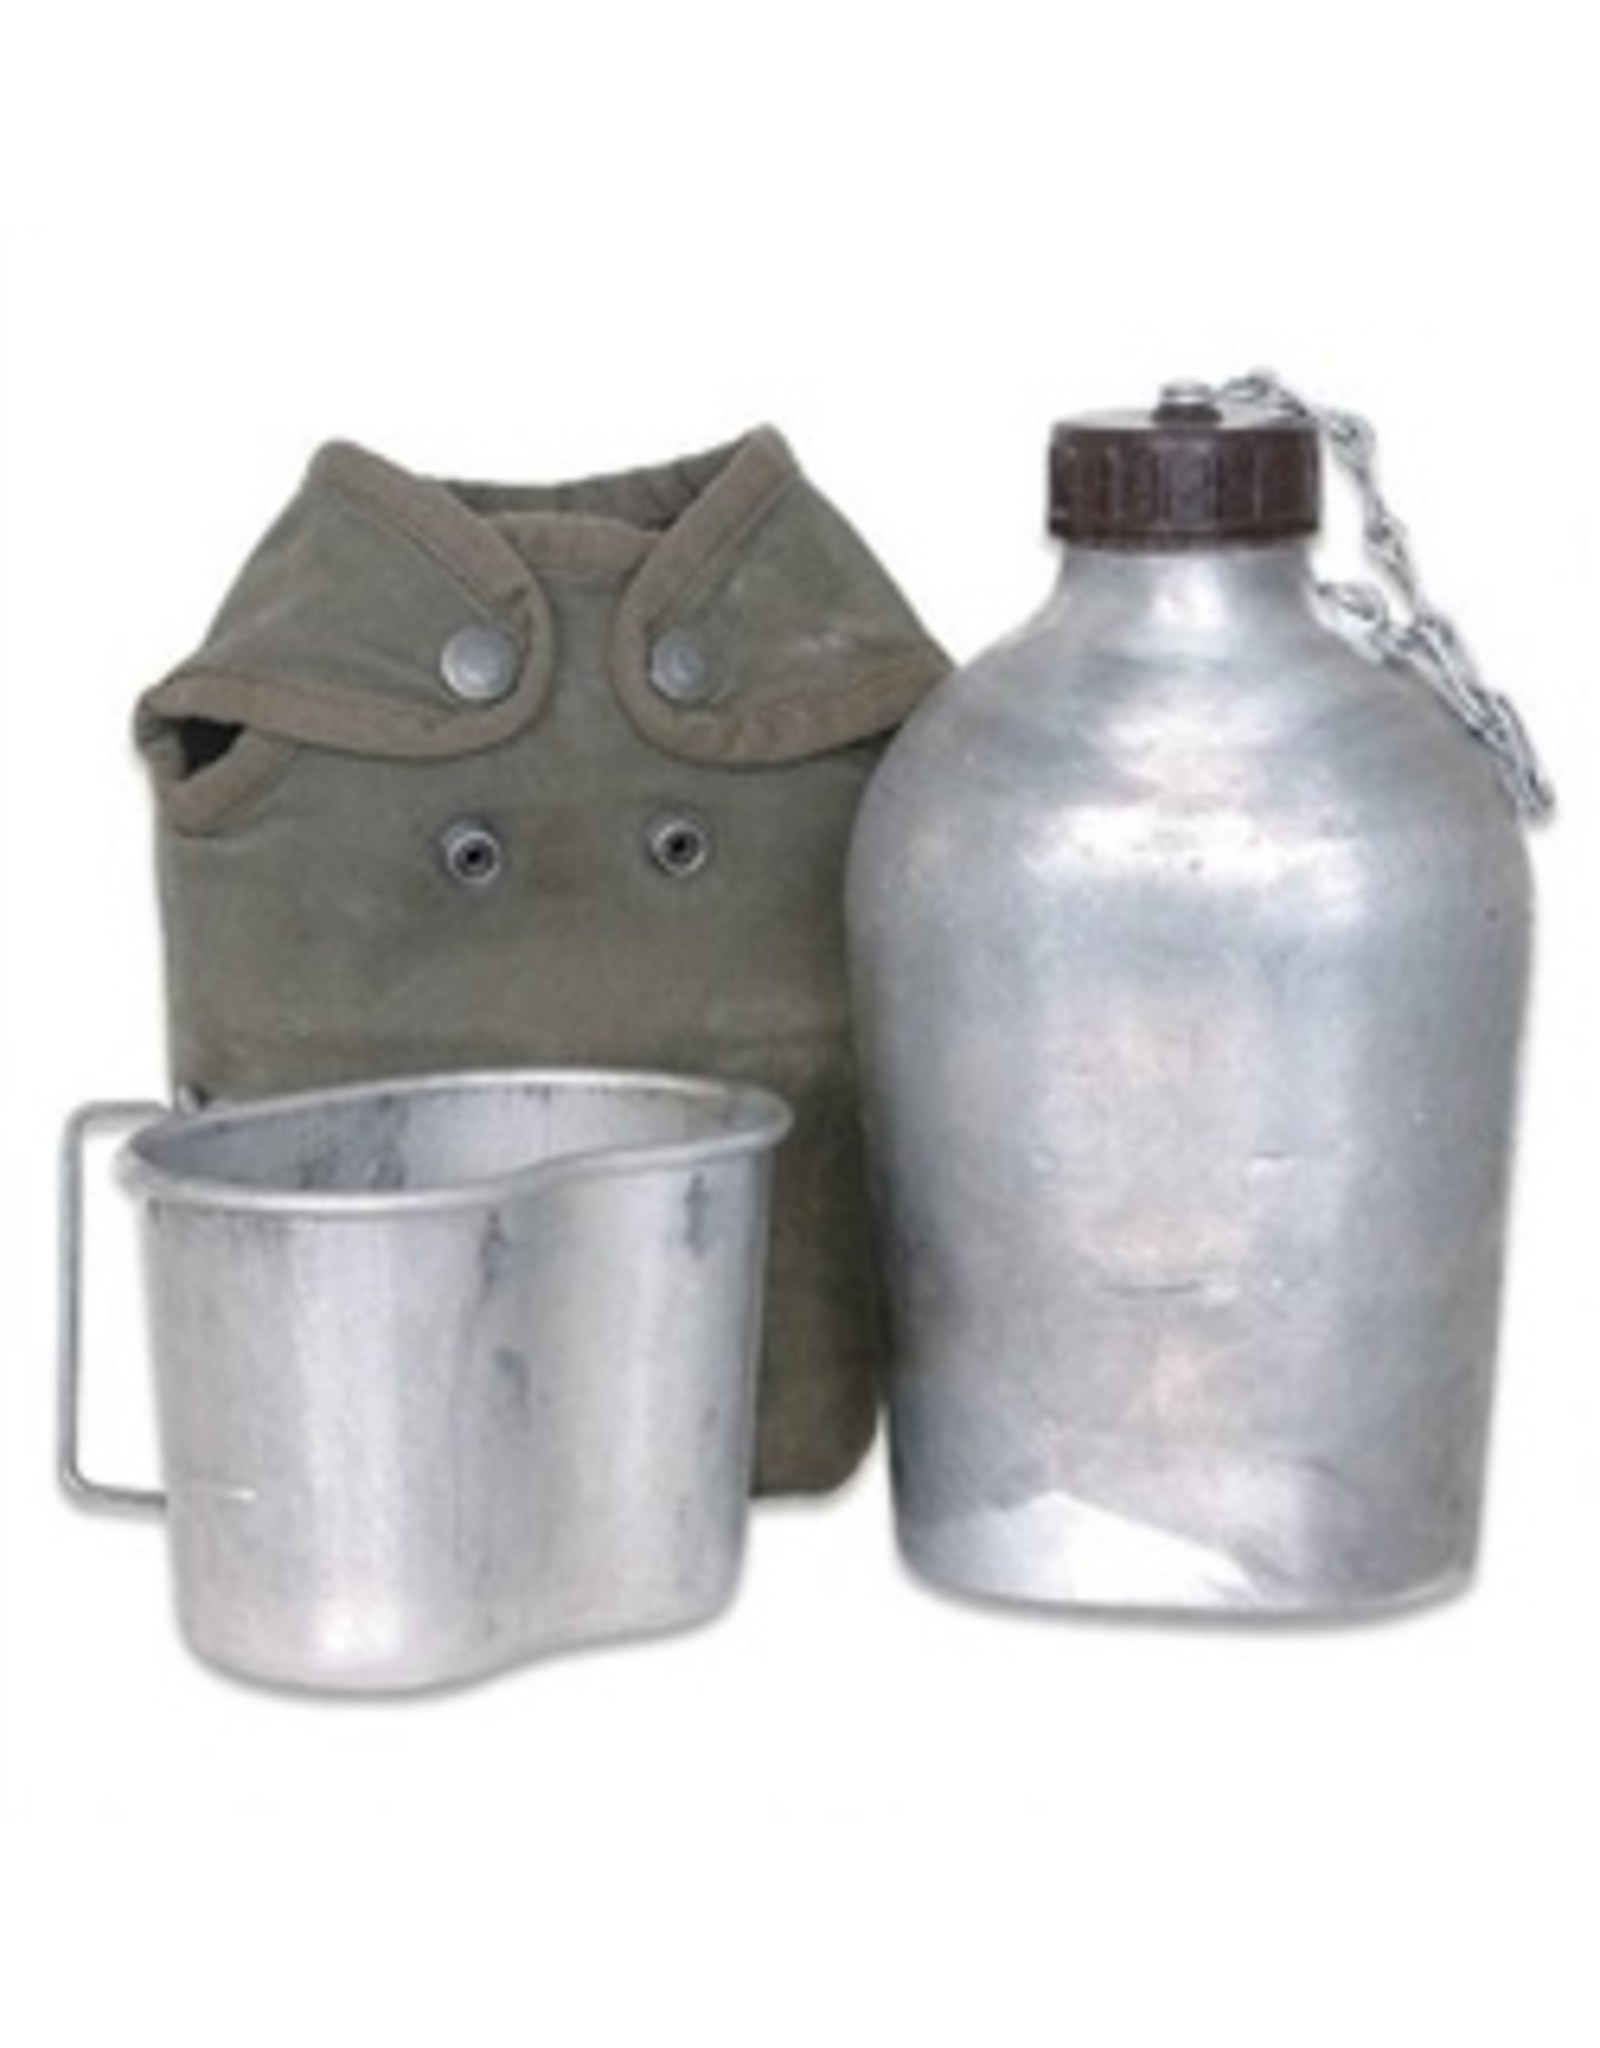 EUROPEAN SURPLUS FRENCH ALUMINUM CANTEEN W/ CUP & COVER-USED